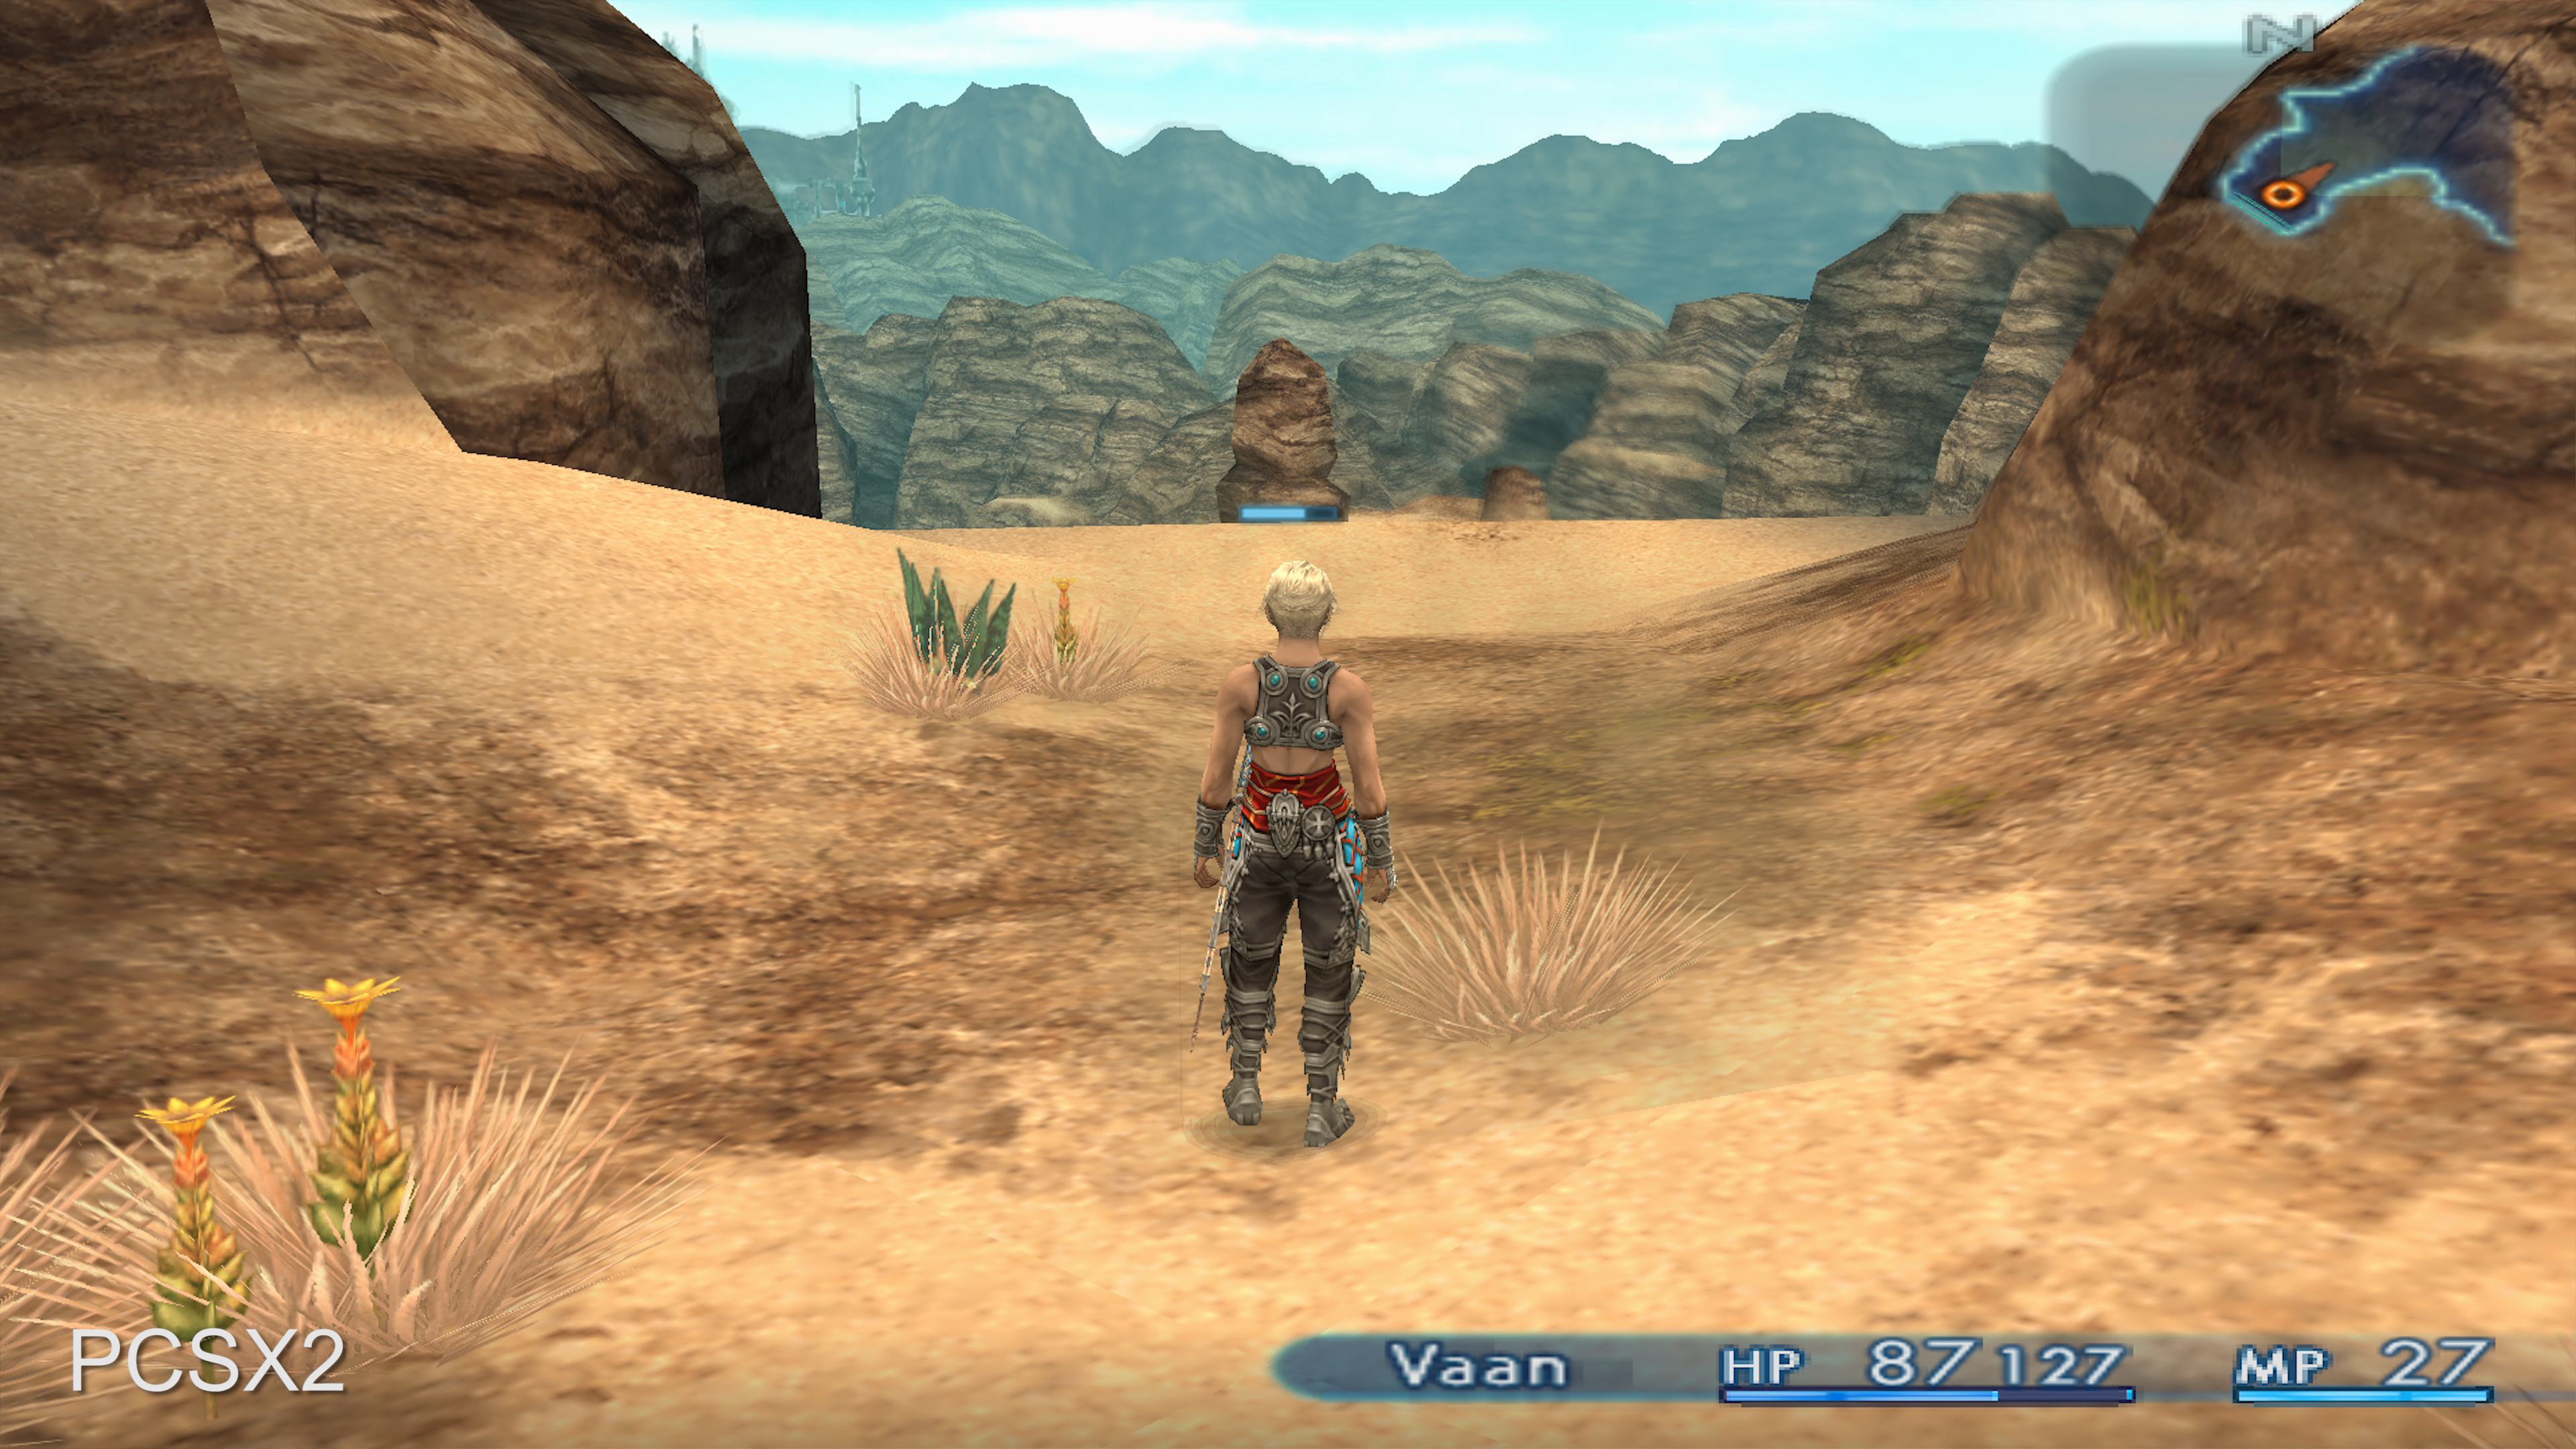 Final Fantasy 12's PS4 remaster is a great upgrade for 1080p gaming